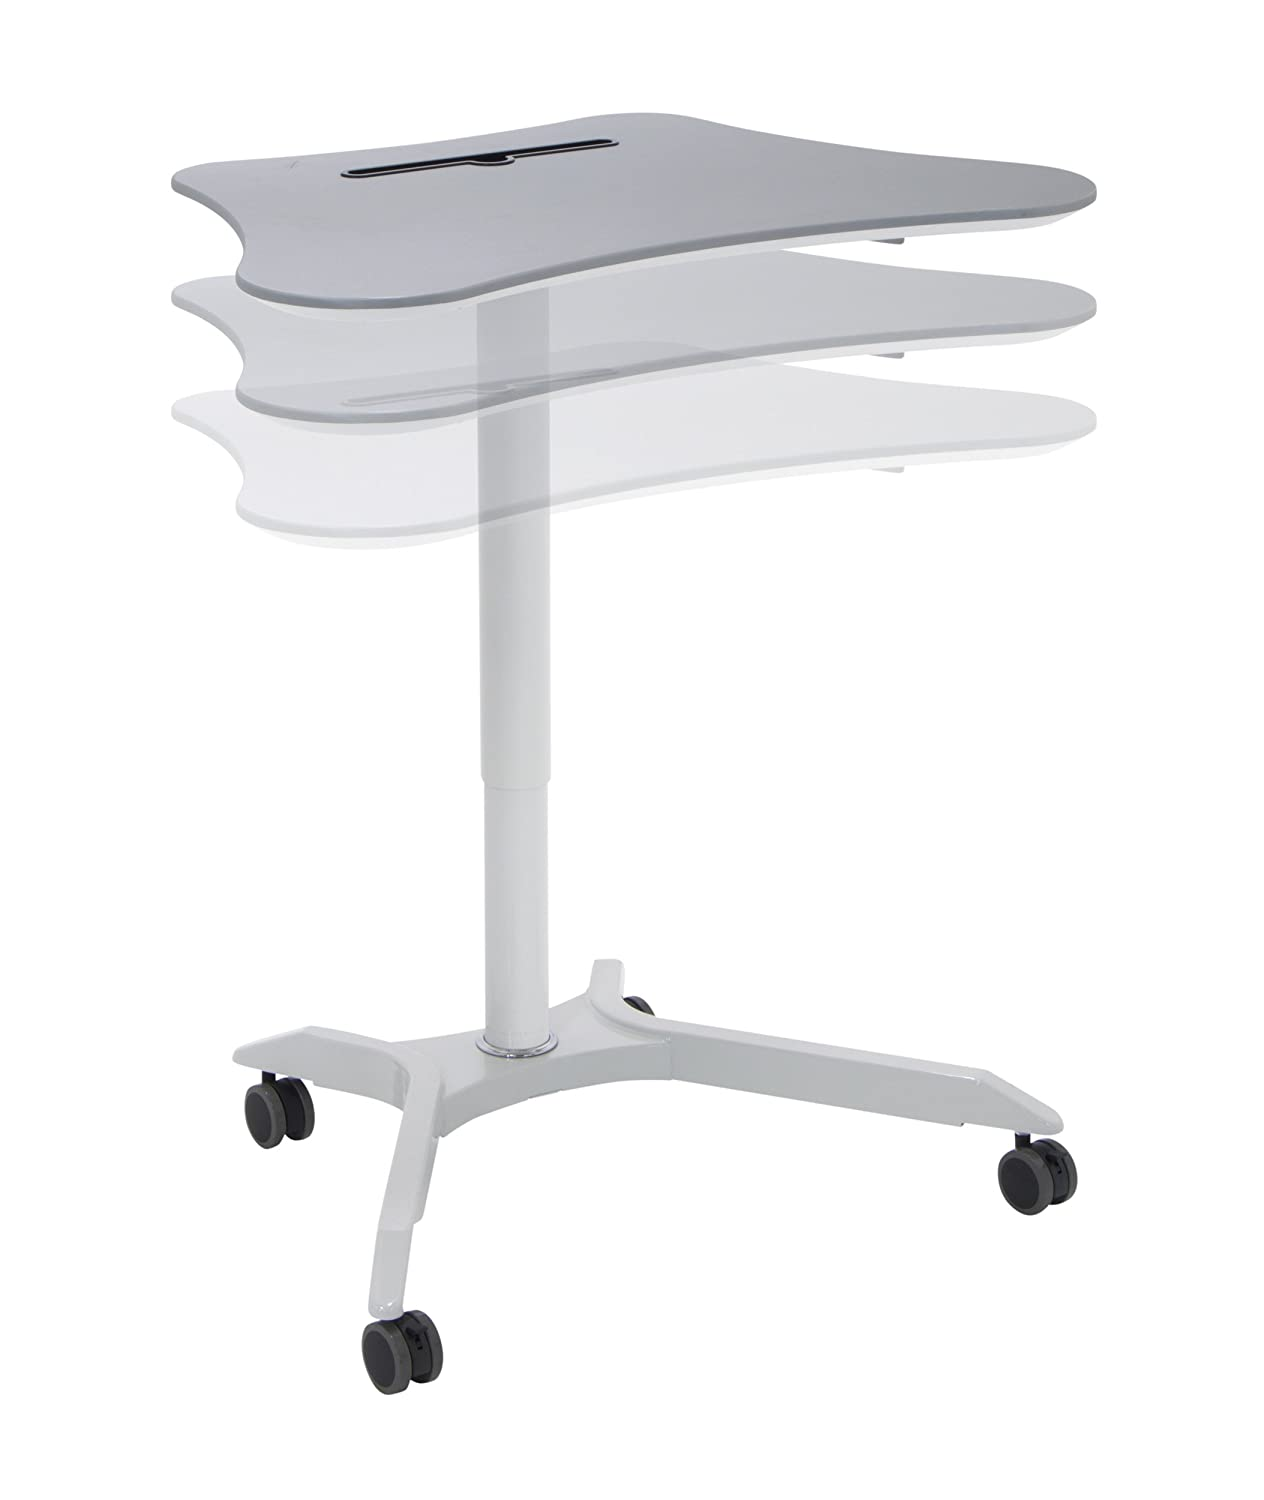 Calico Designs 51234 Cascade Height Adjustable Cart, White Silver